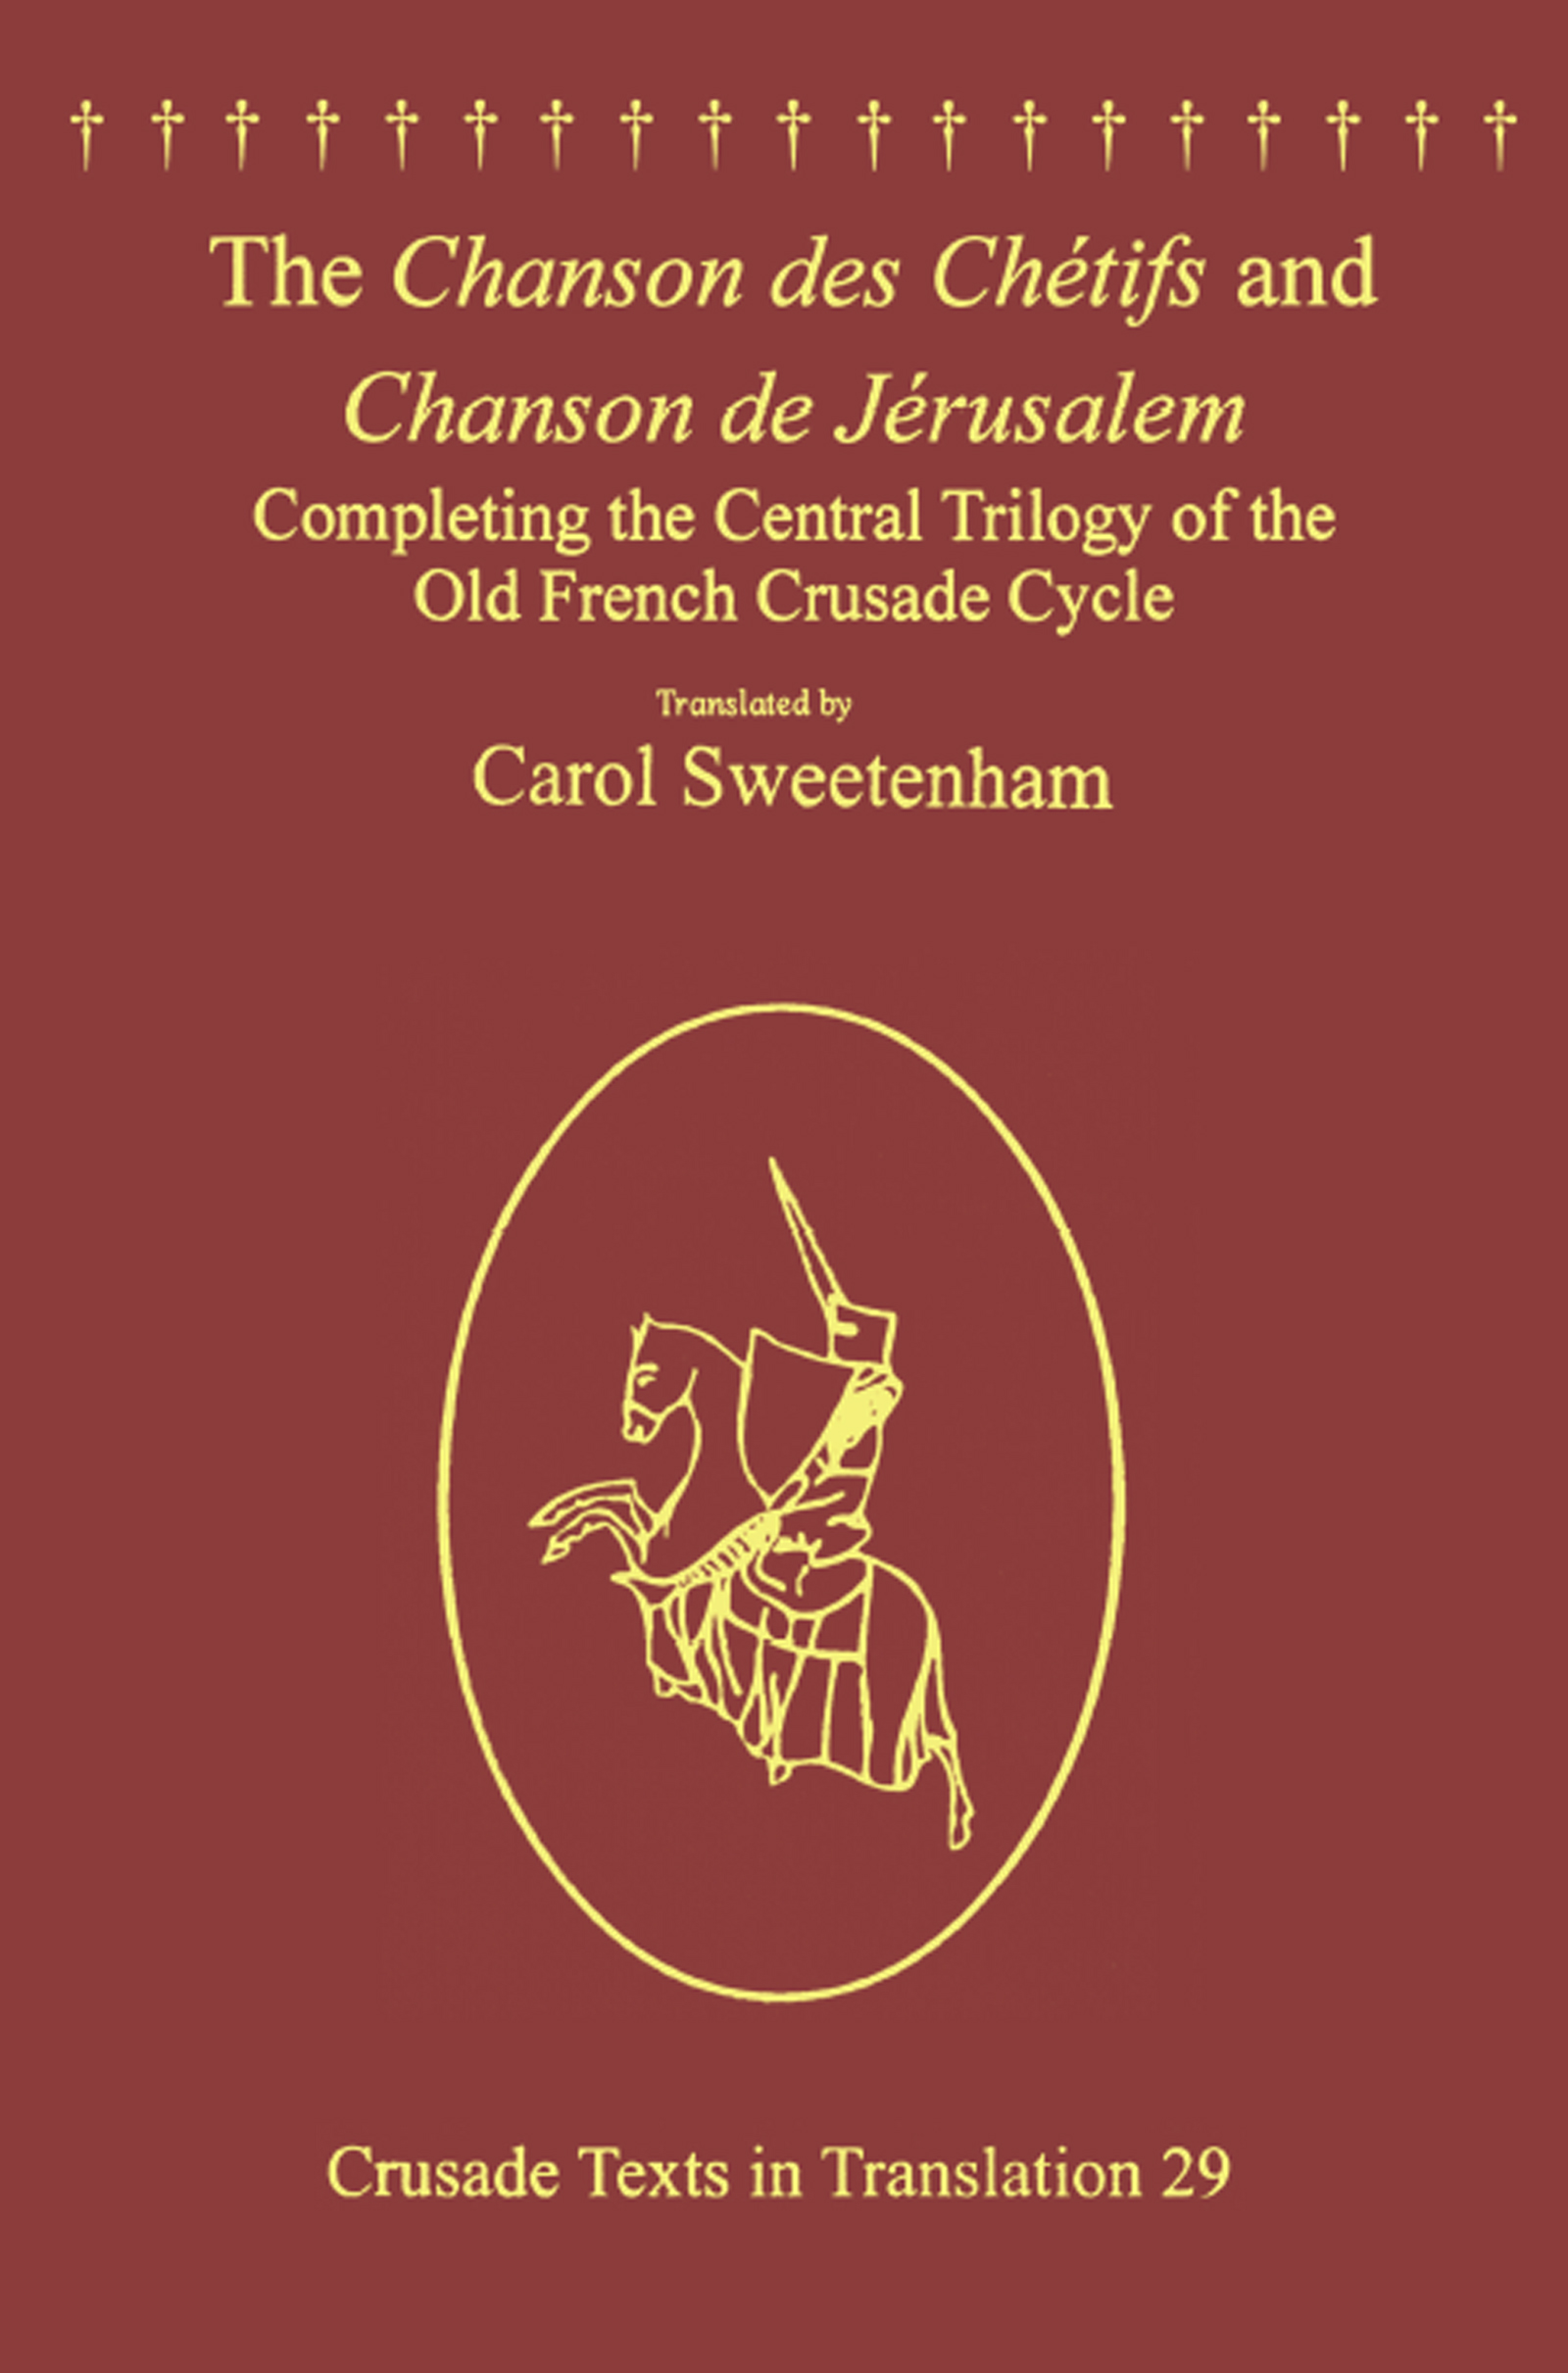 The Chanson des Chétifs and Chanson de Jérusalem: Completing the Central Trilogy of the Old French Crusade Cycle, 1st Edition (Paperback) book cover